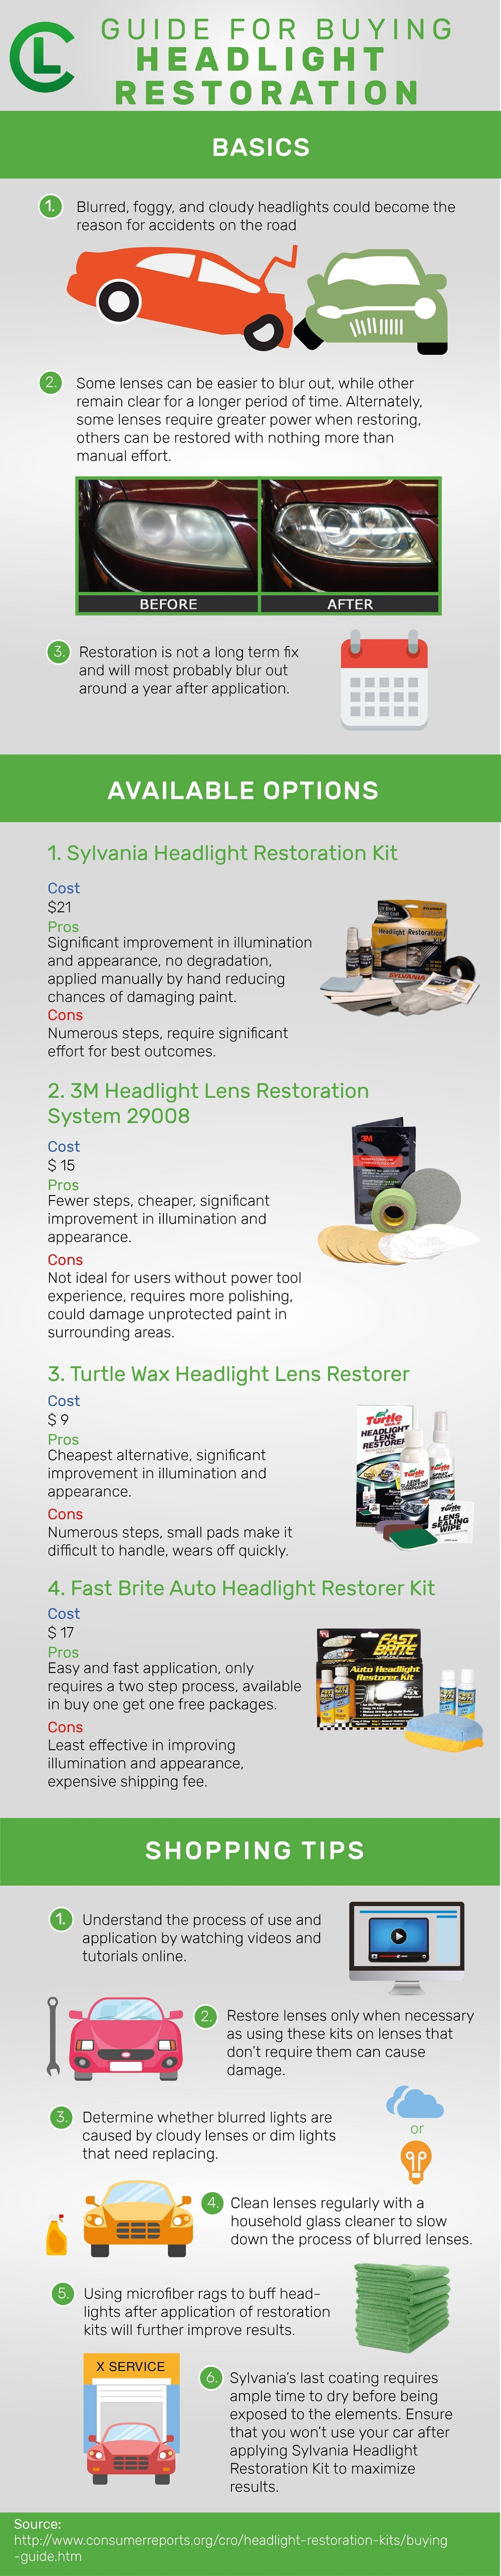 Guide For Buying Headlight Restoration Infographic